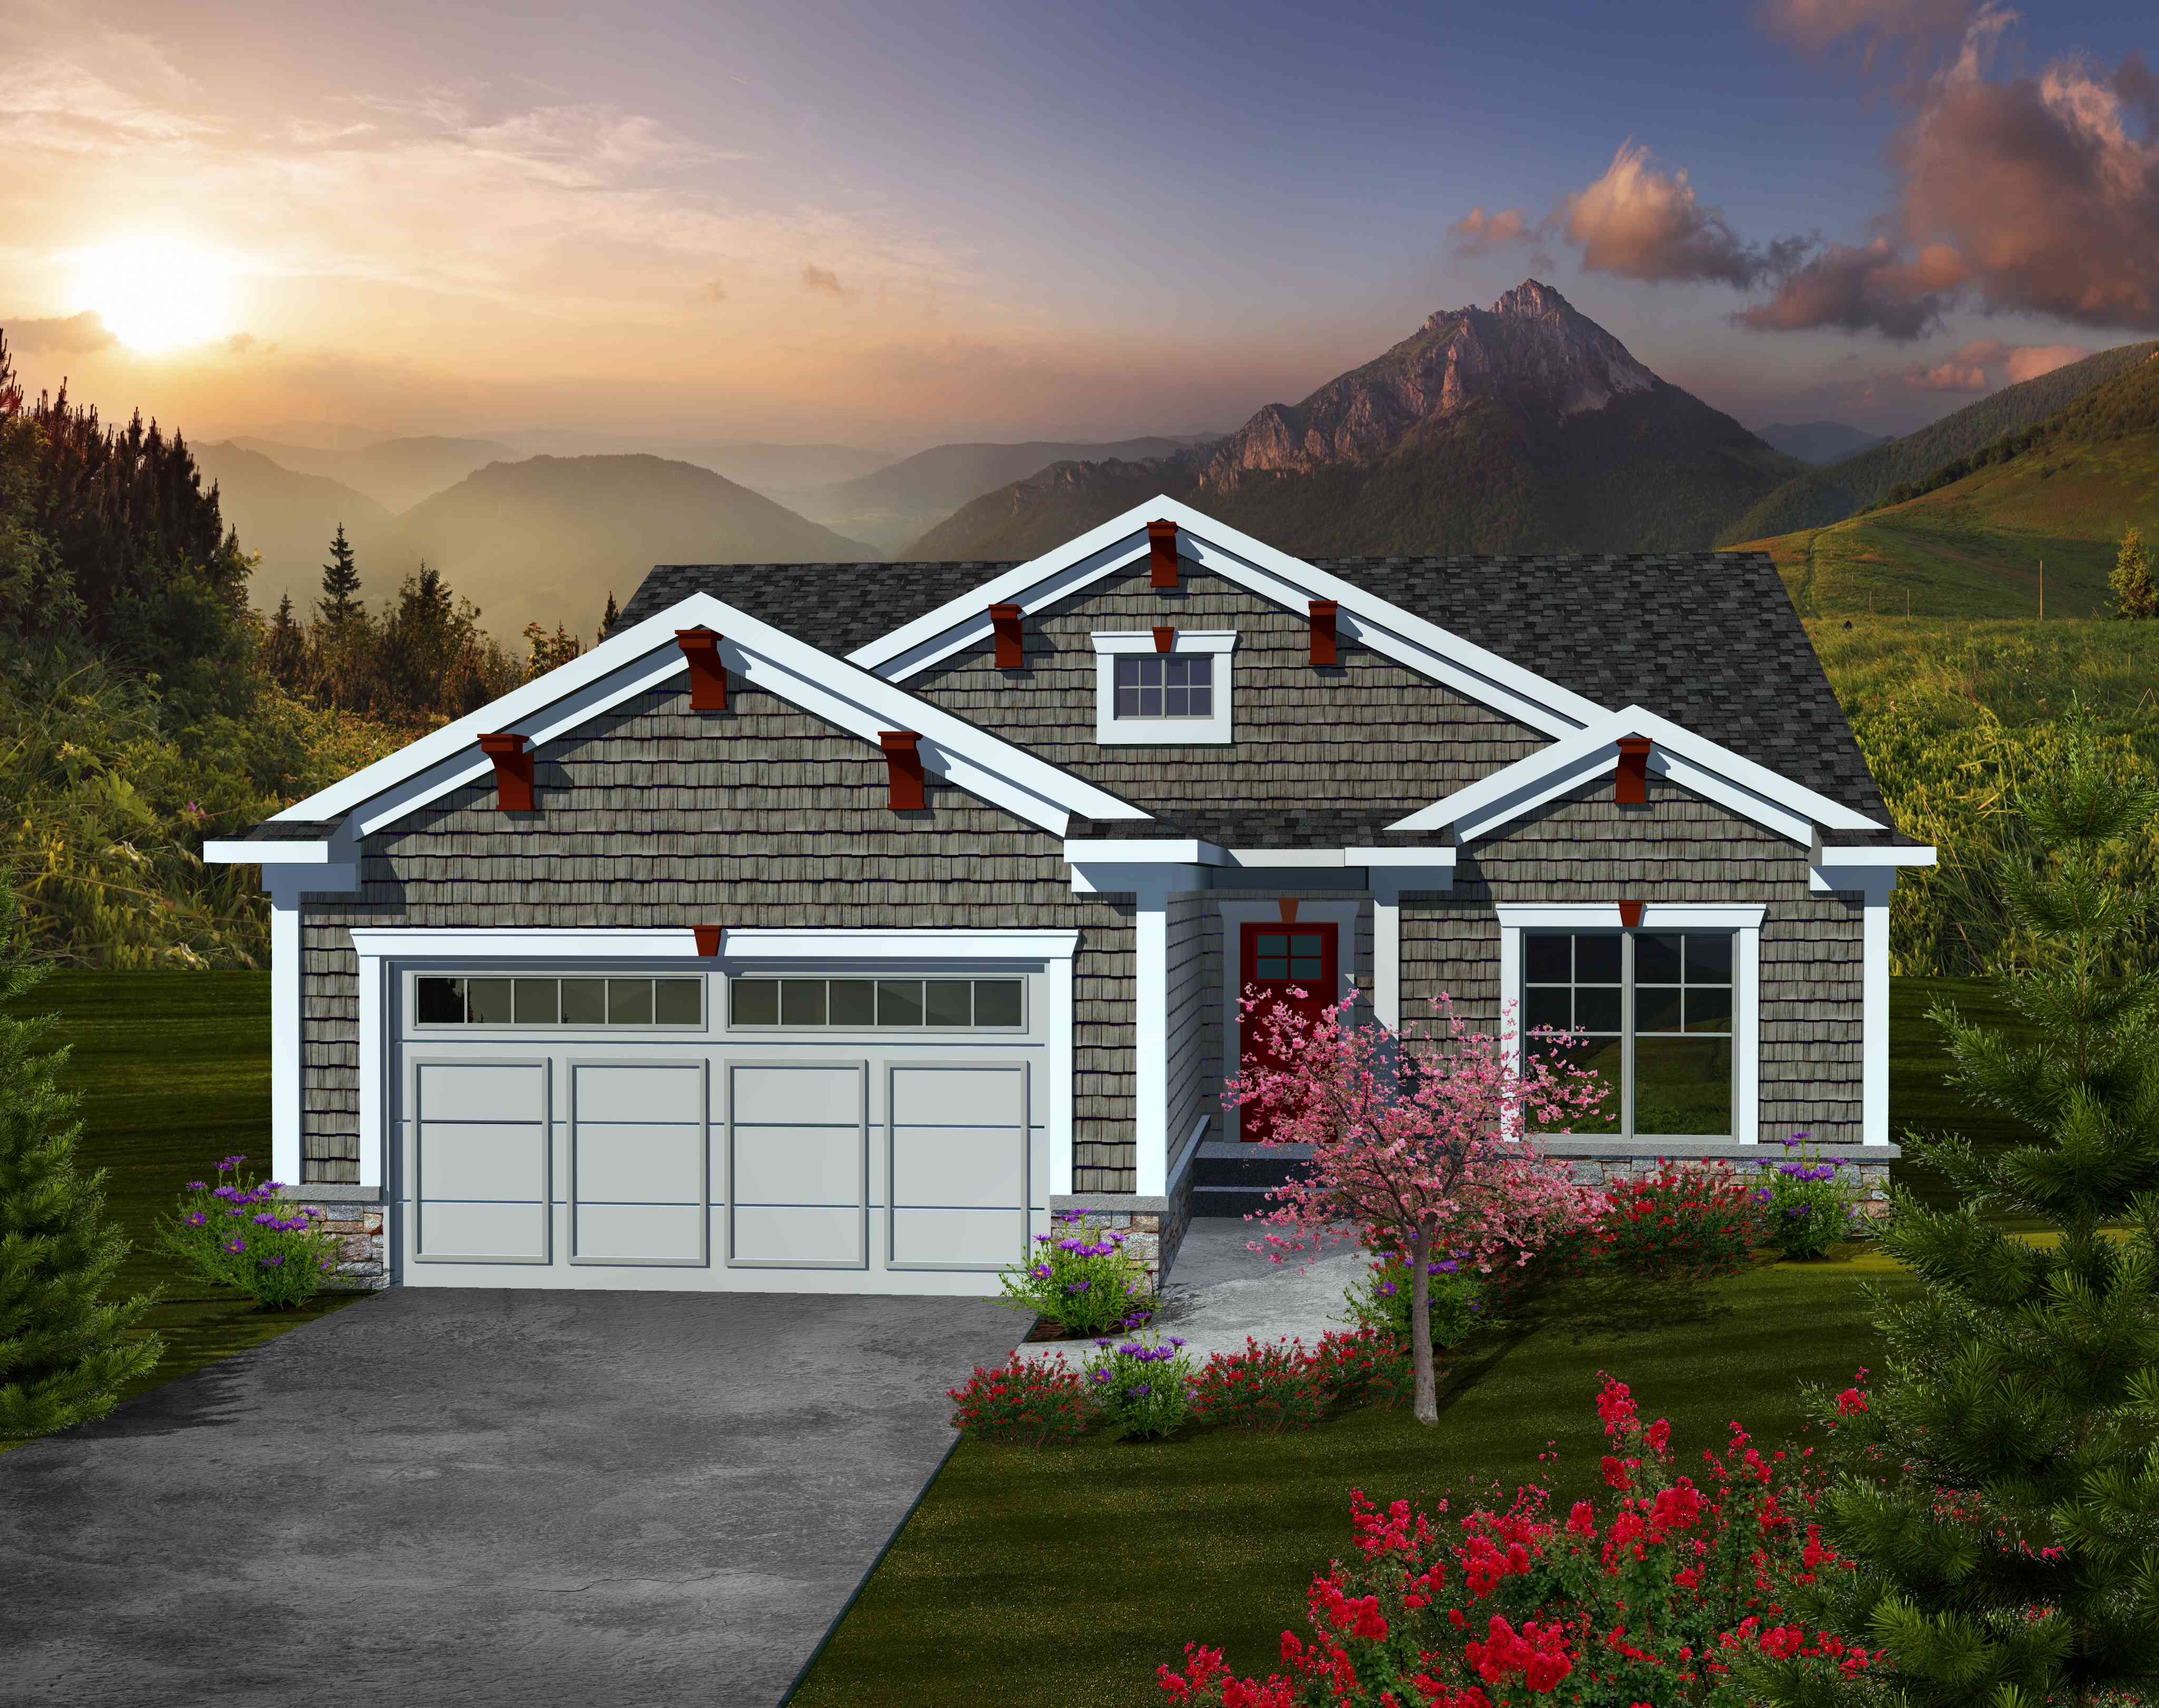 Charming 2 bedroom ranch home plan 89860ah 1st floor for Free craftsman house plans